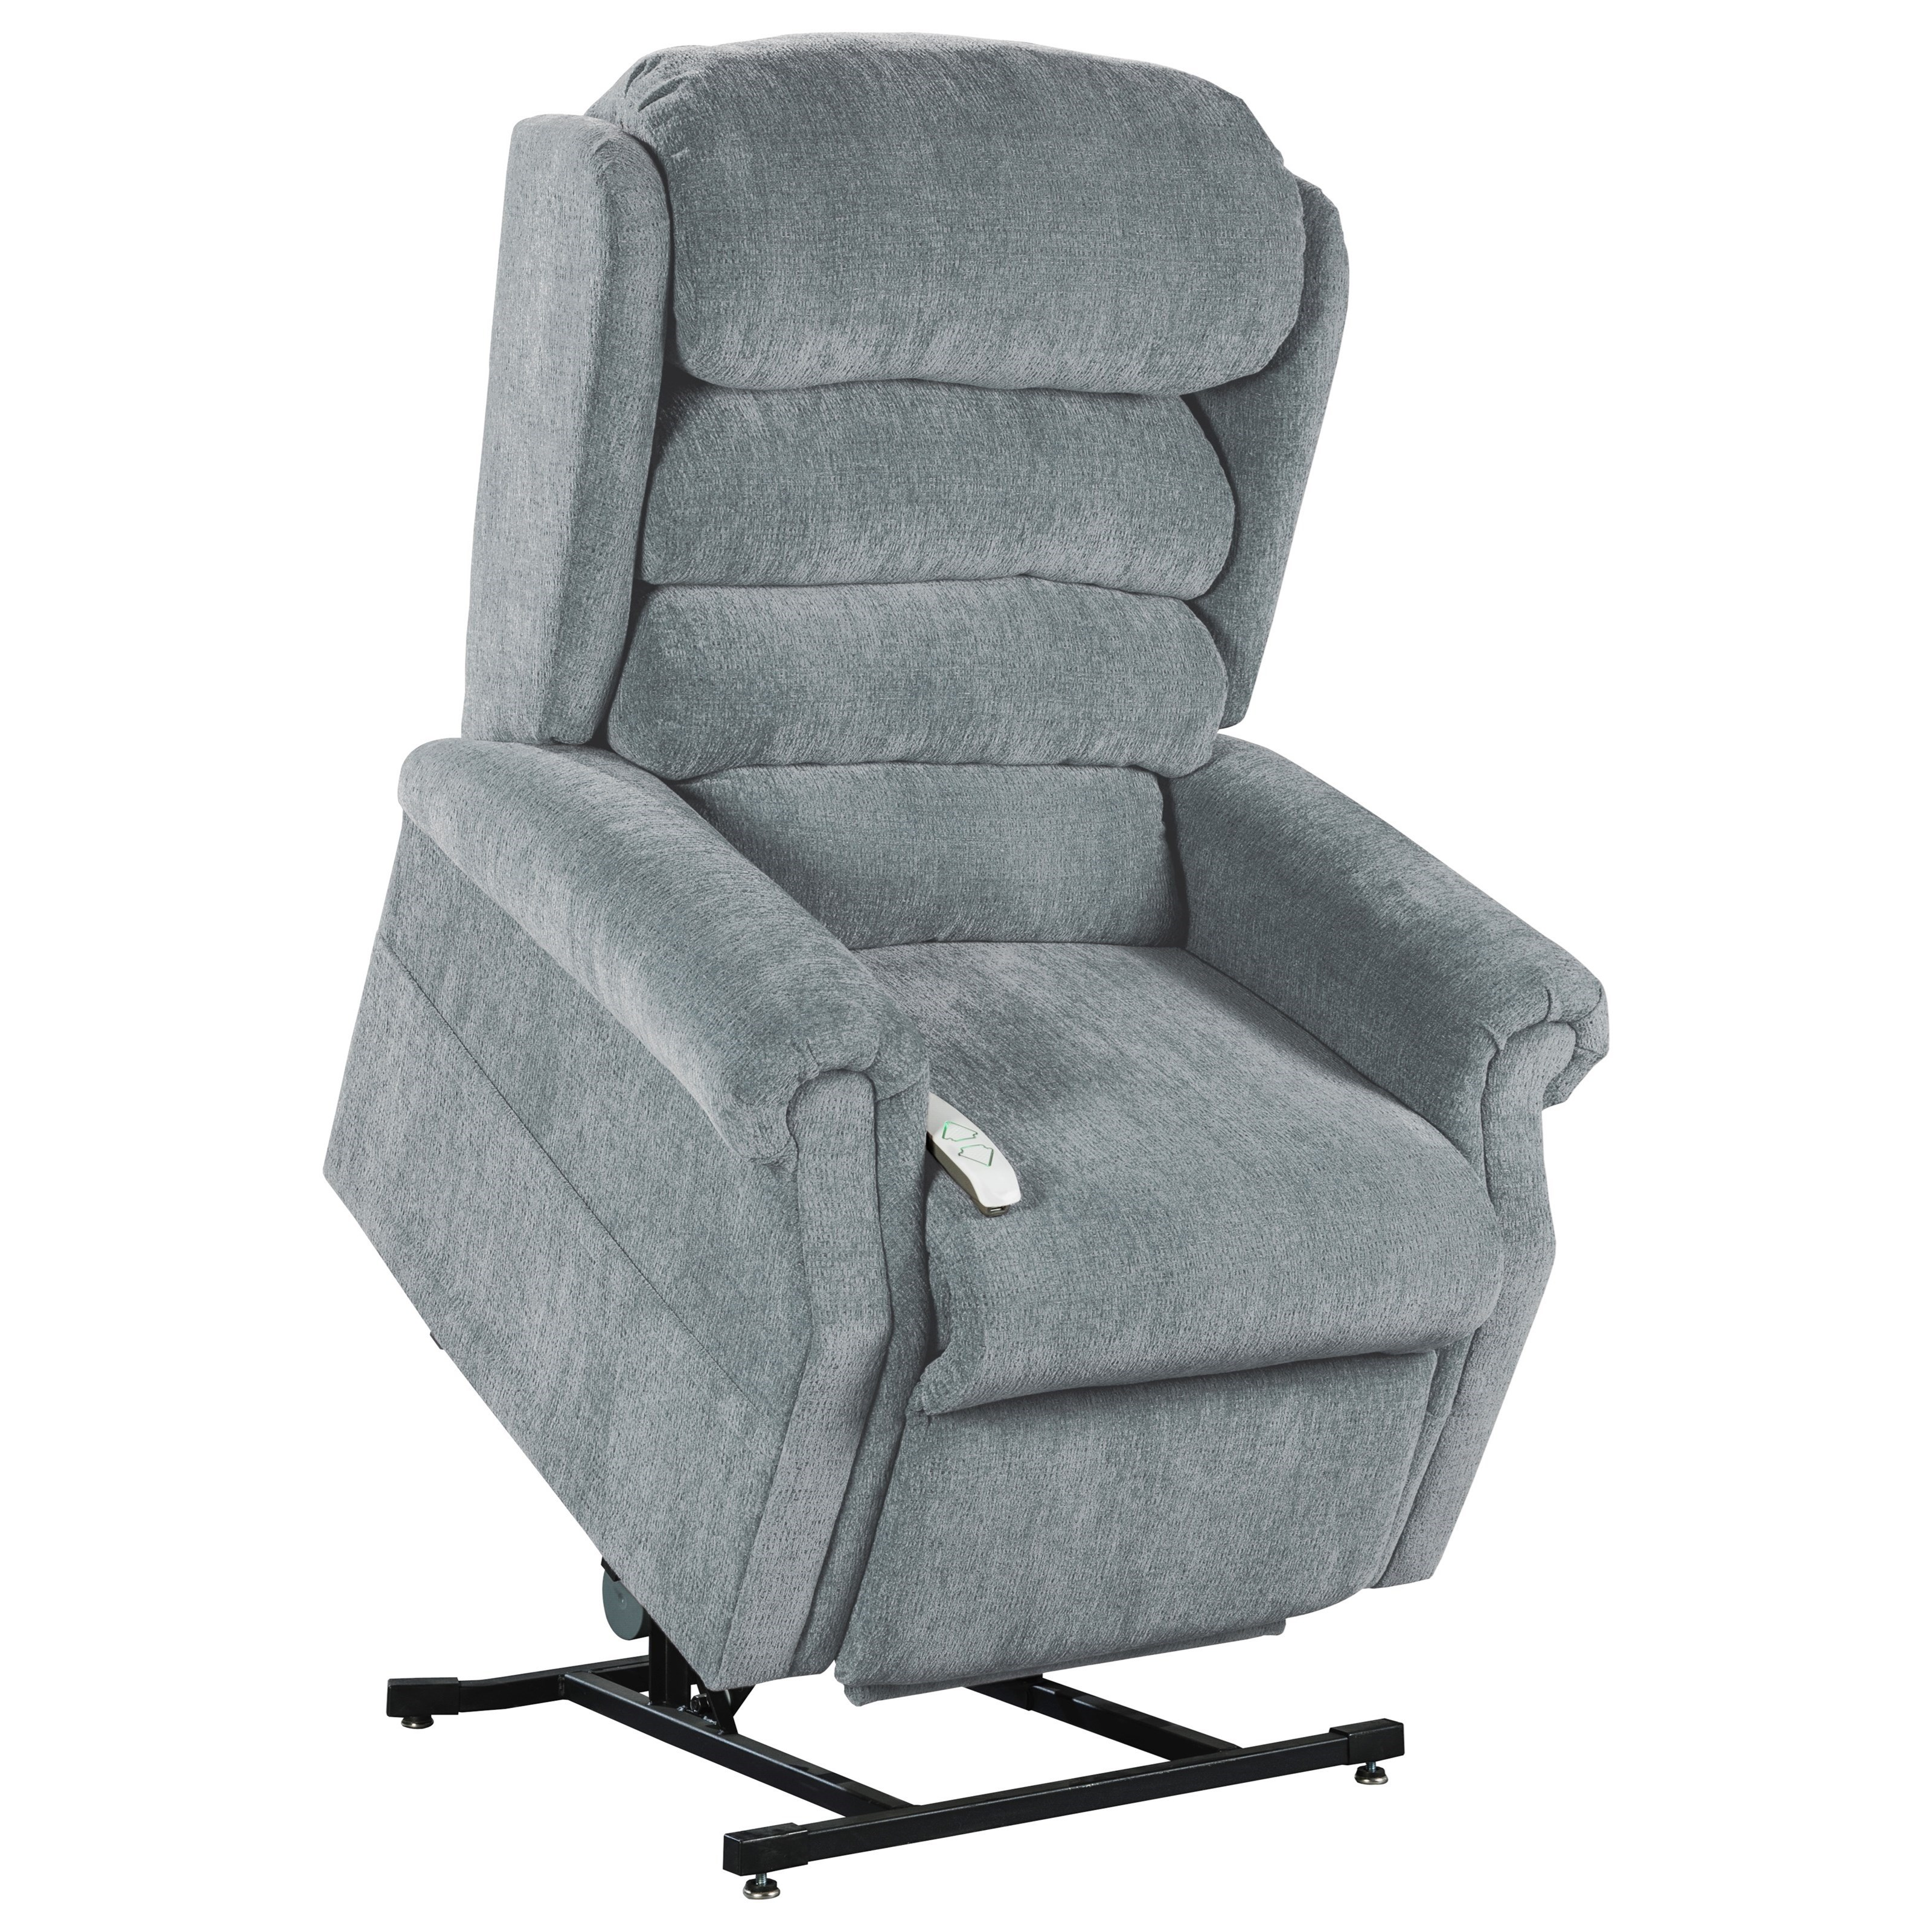 Lift Chairs 3-Position Chaise Lounger by Windermere Motion at Lapeer Furniture & Mattress Center